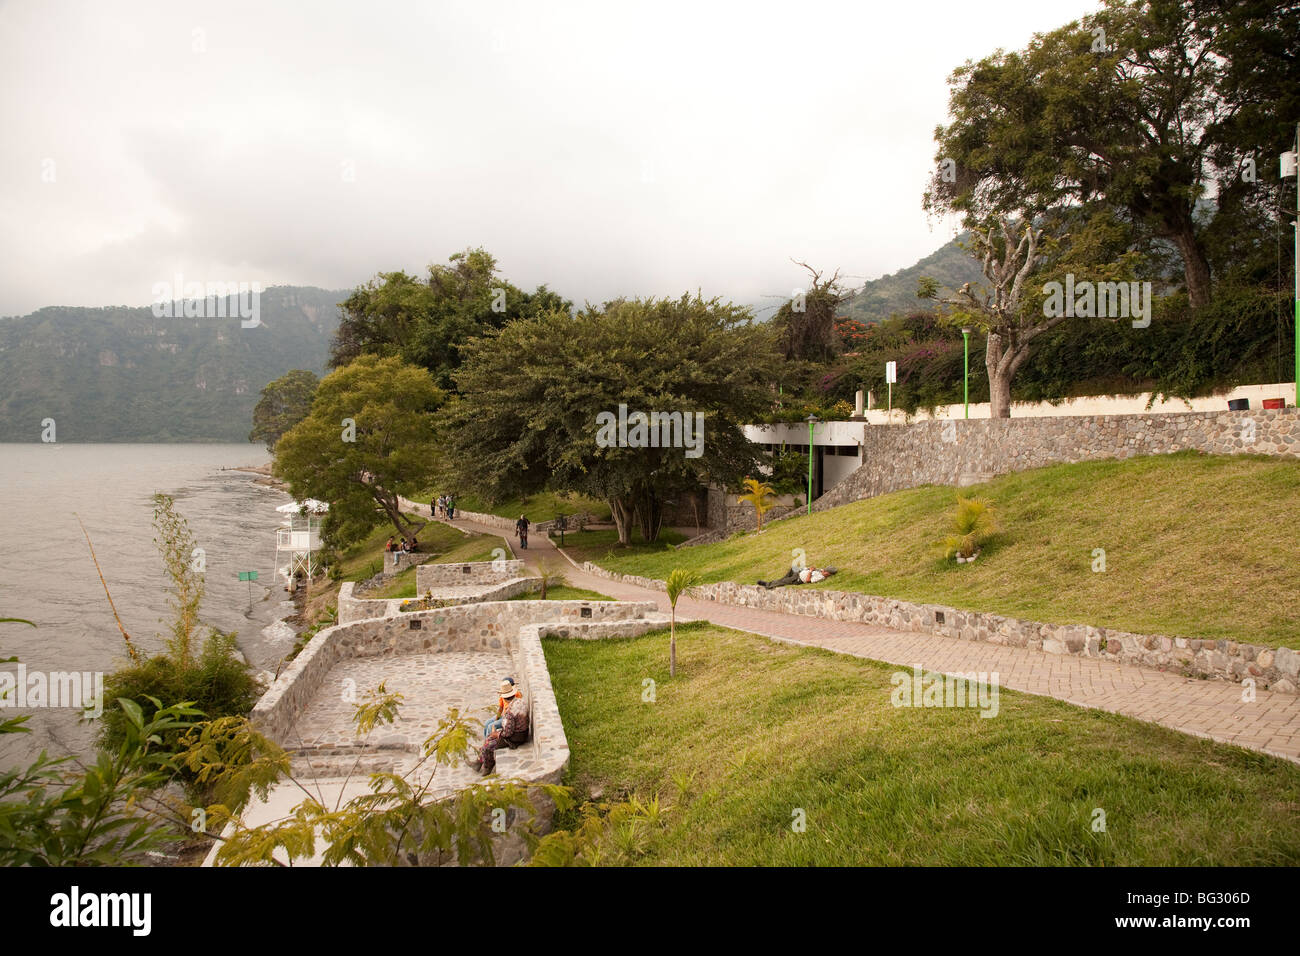 Promenade at the end of Calle Santander Panajachel Lake Atitlan Guatemala. - Stock Image